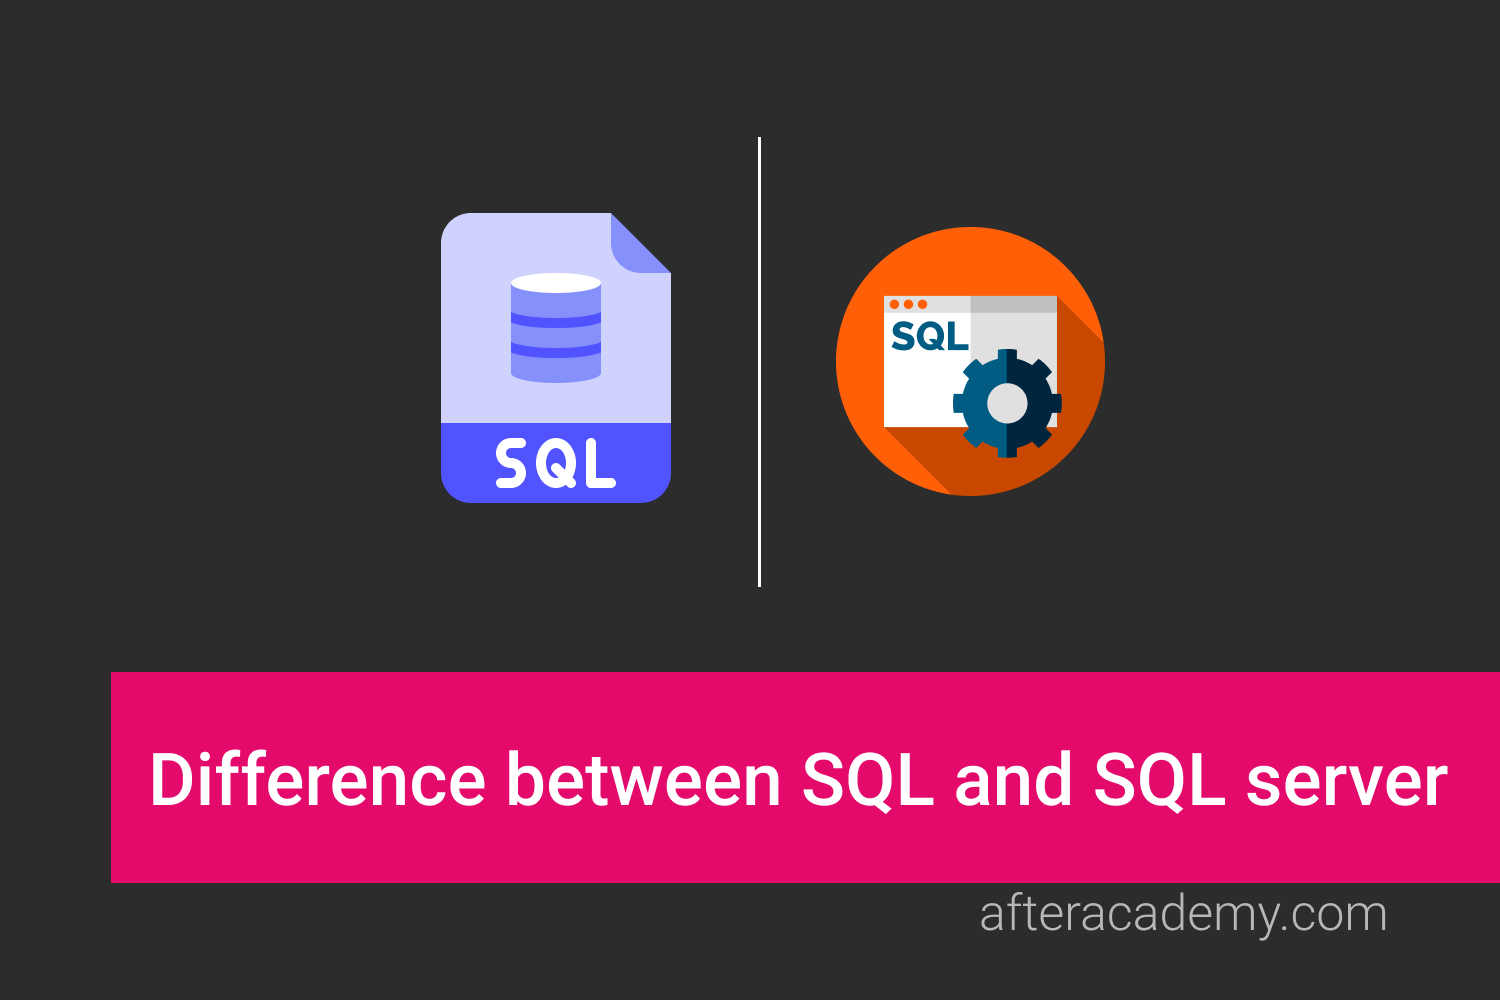 What is the difference between SQL and SQL server?